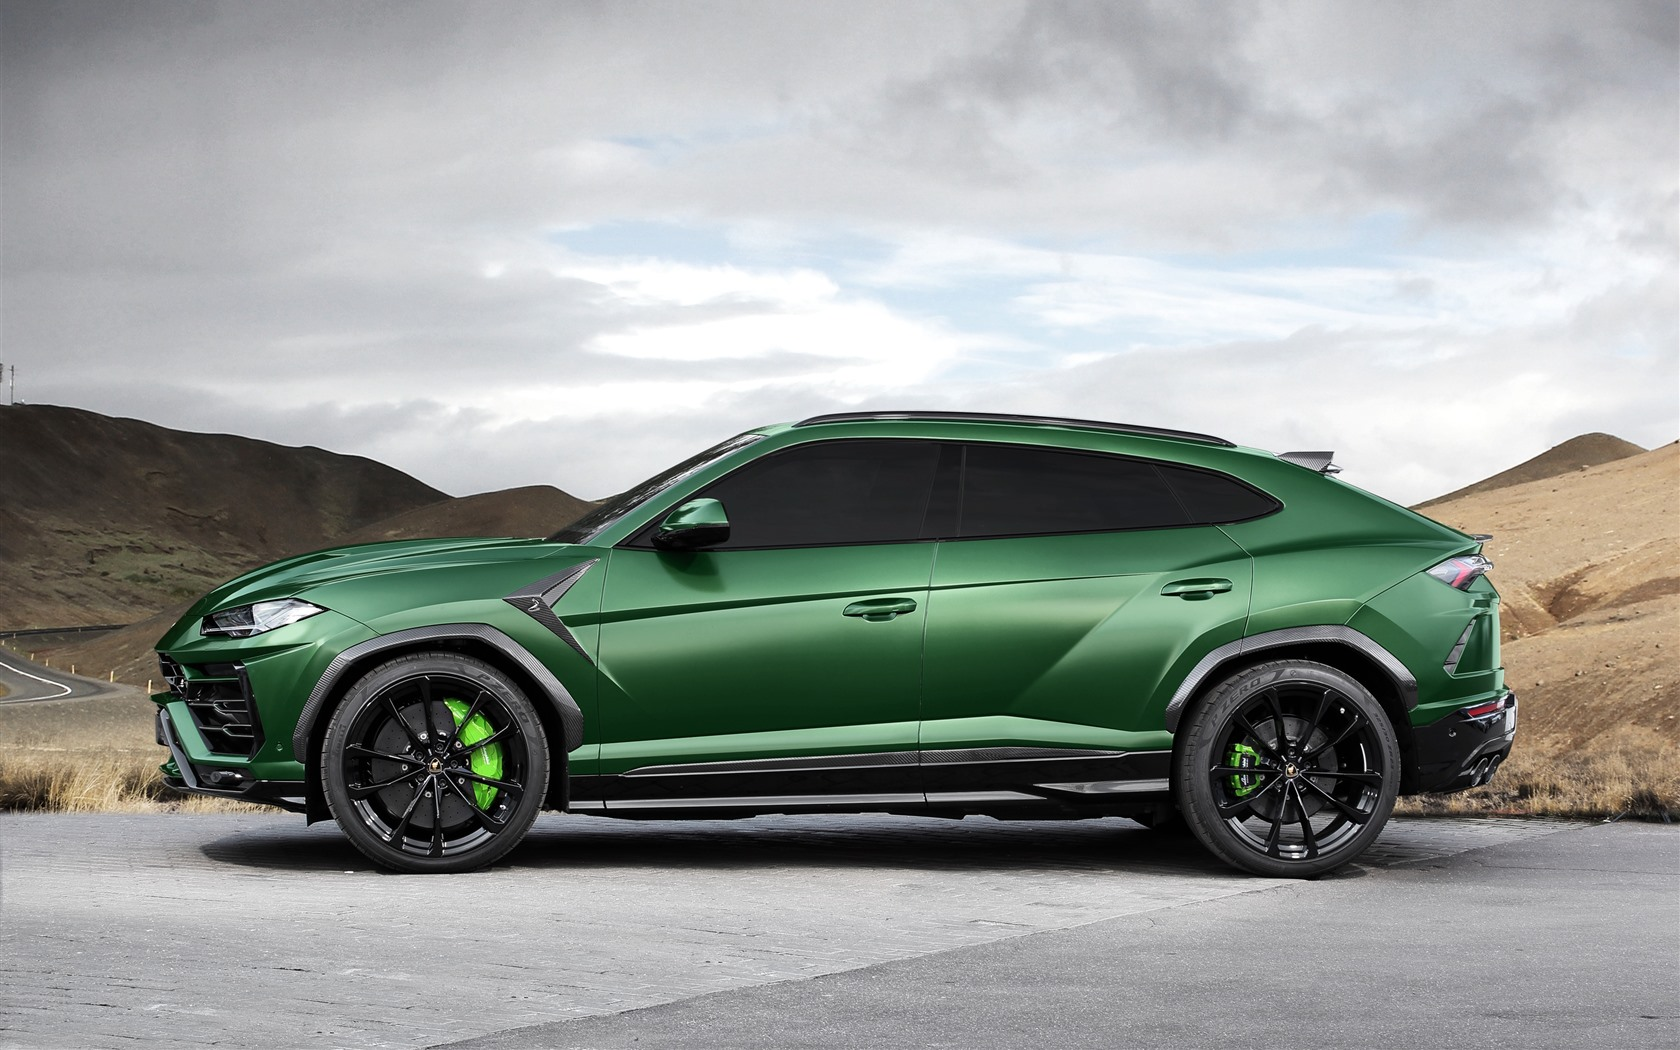 Urus 2018 suv 1242x2688 iphone xs max - Car side view wallpaper ...